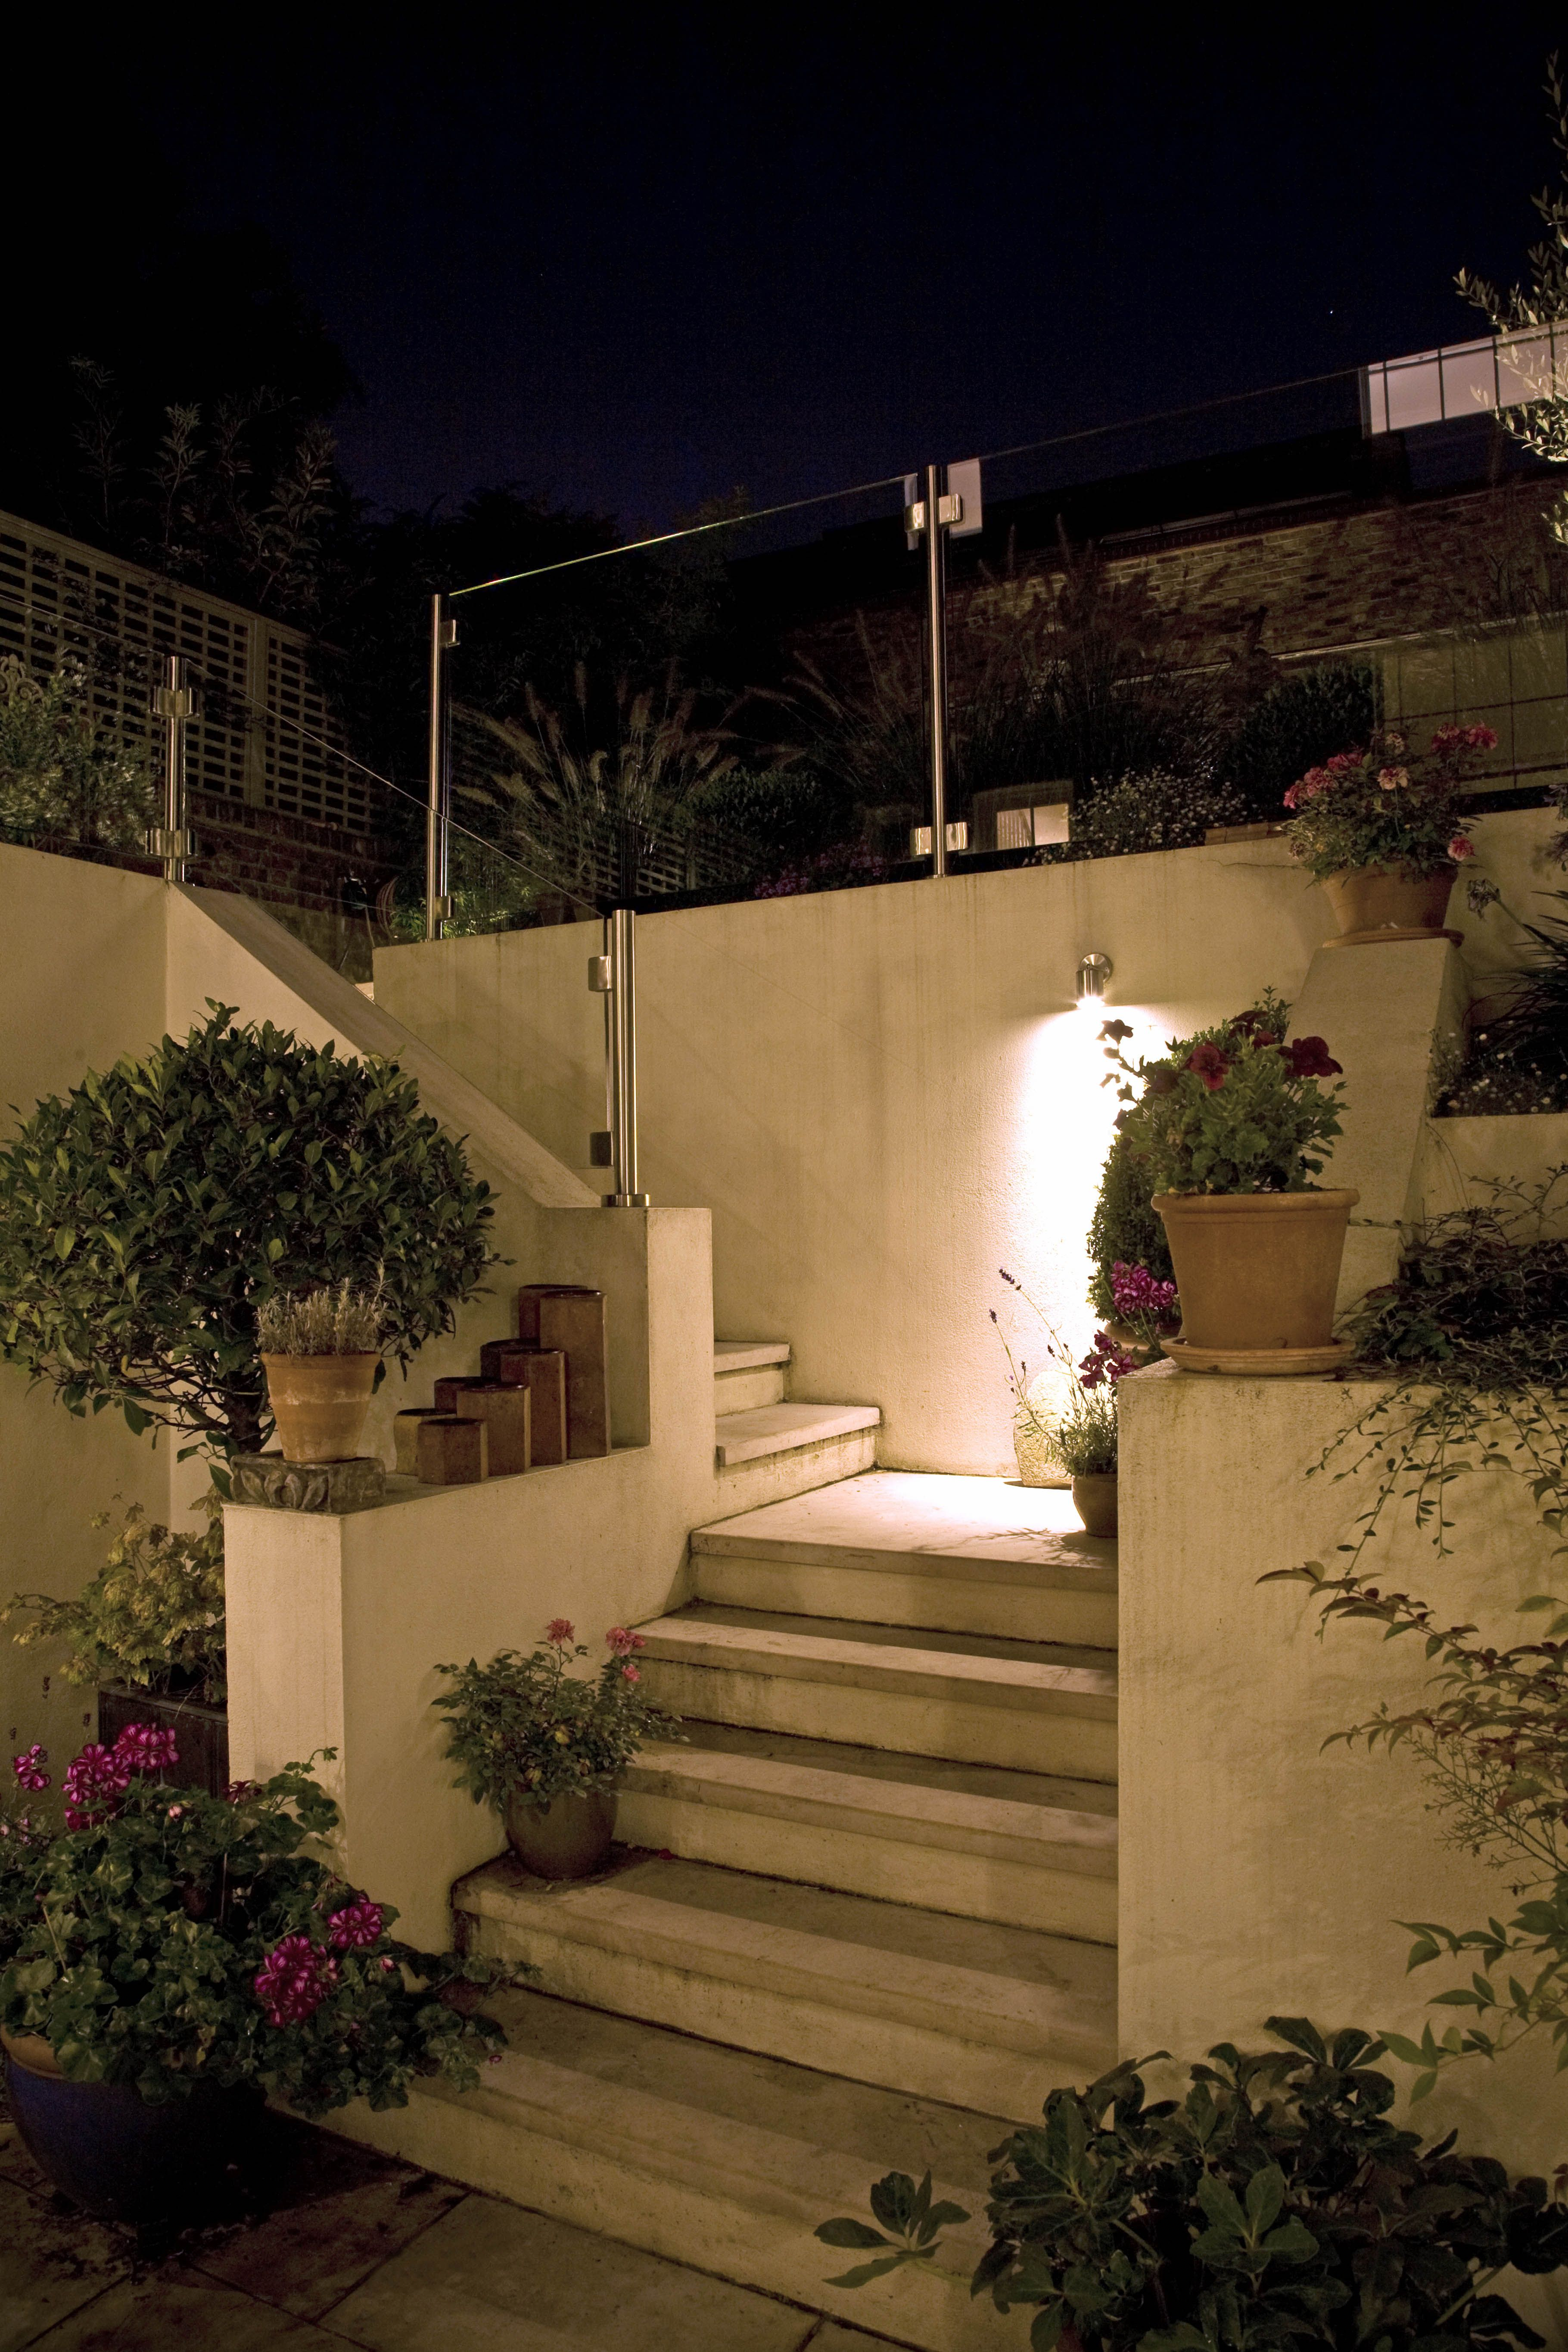 For this small garden in london we used a hunza wall down light in for this small garden in london we used a hunza wall down light in stainless steel aloadofball Image collections